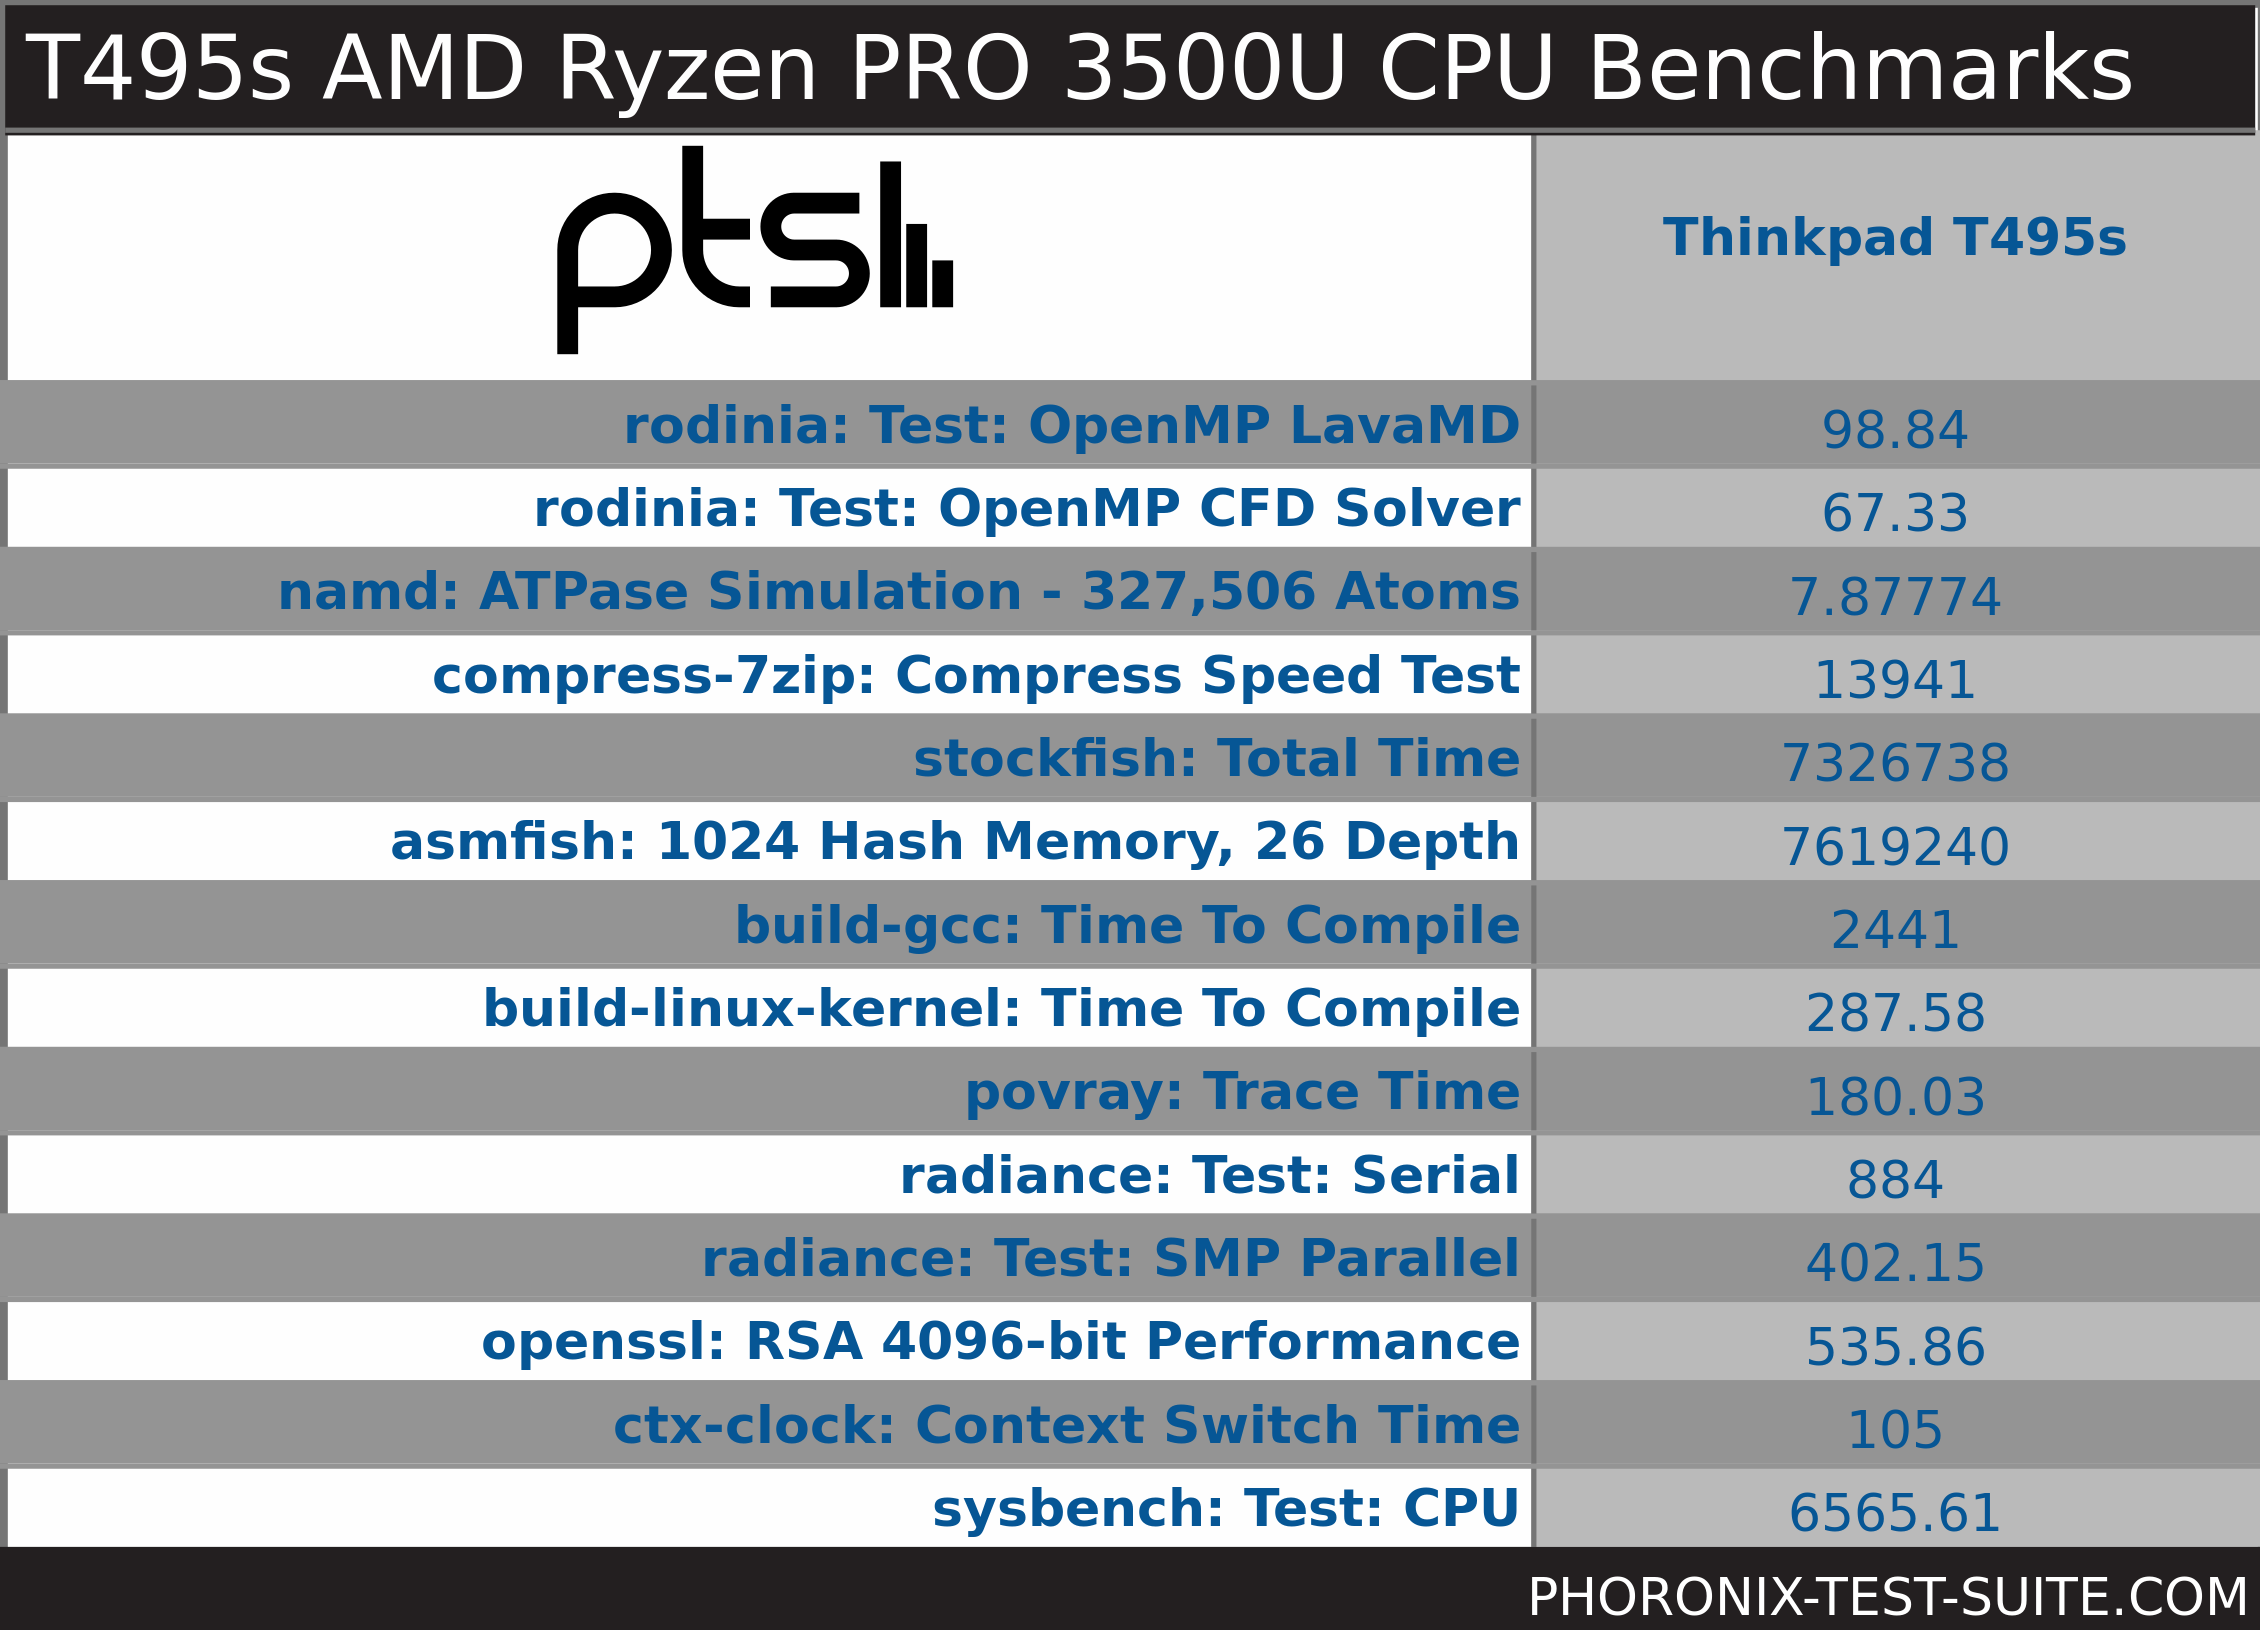 CPU Benchmark Overview